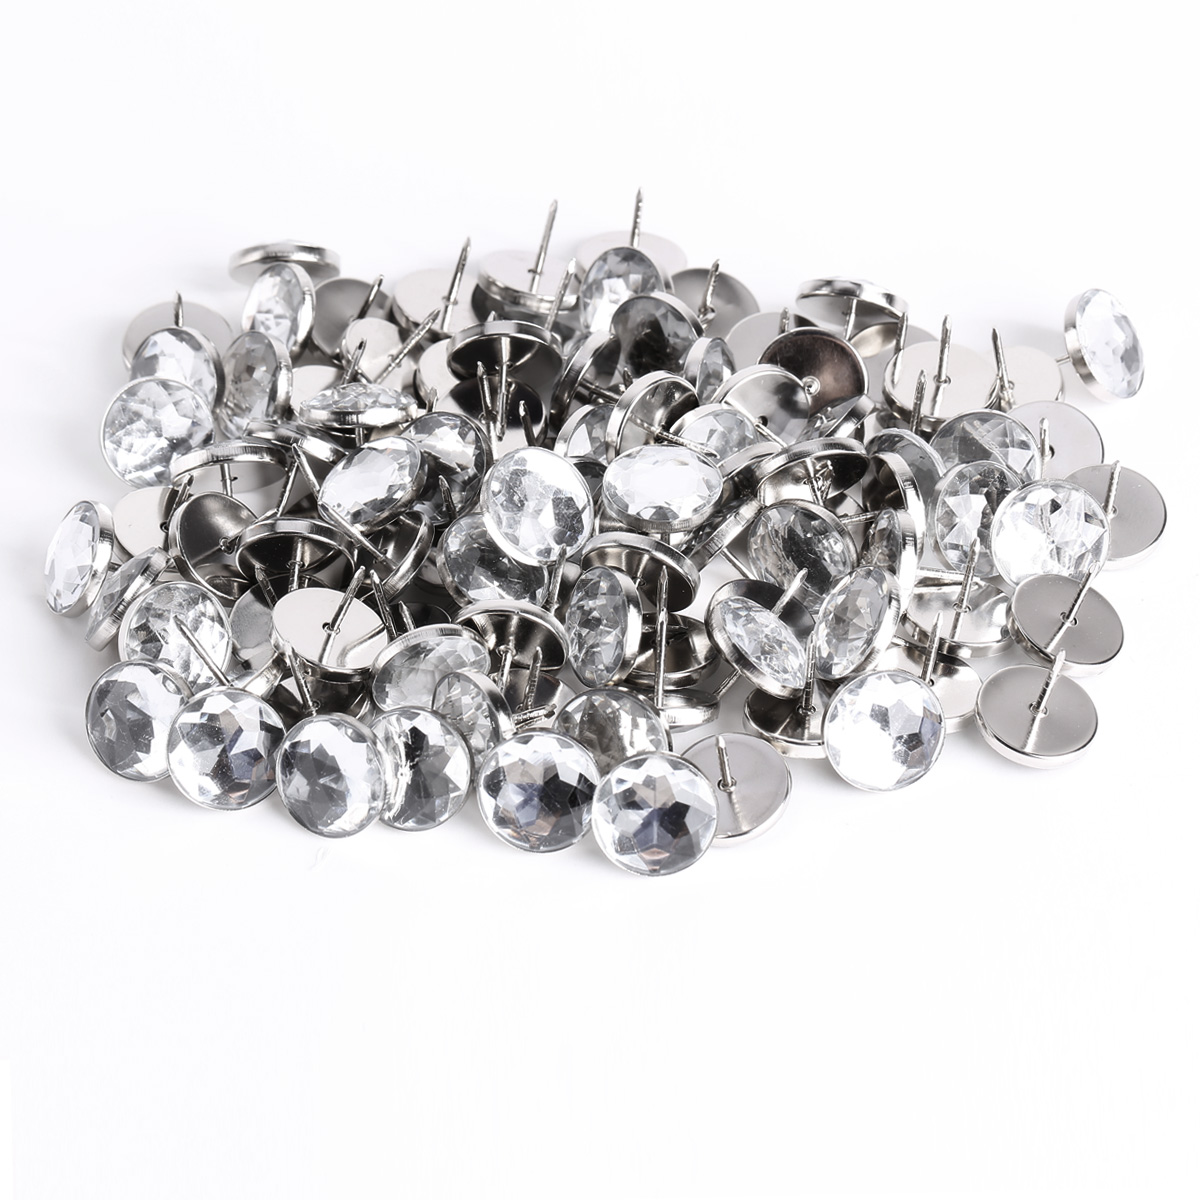 100x bouton clou en strass 22mm décoration scrapbooking